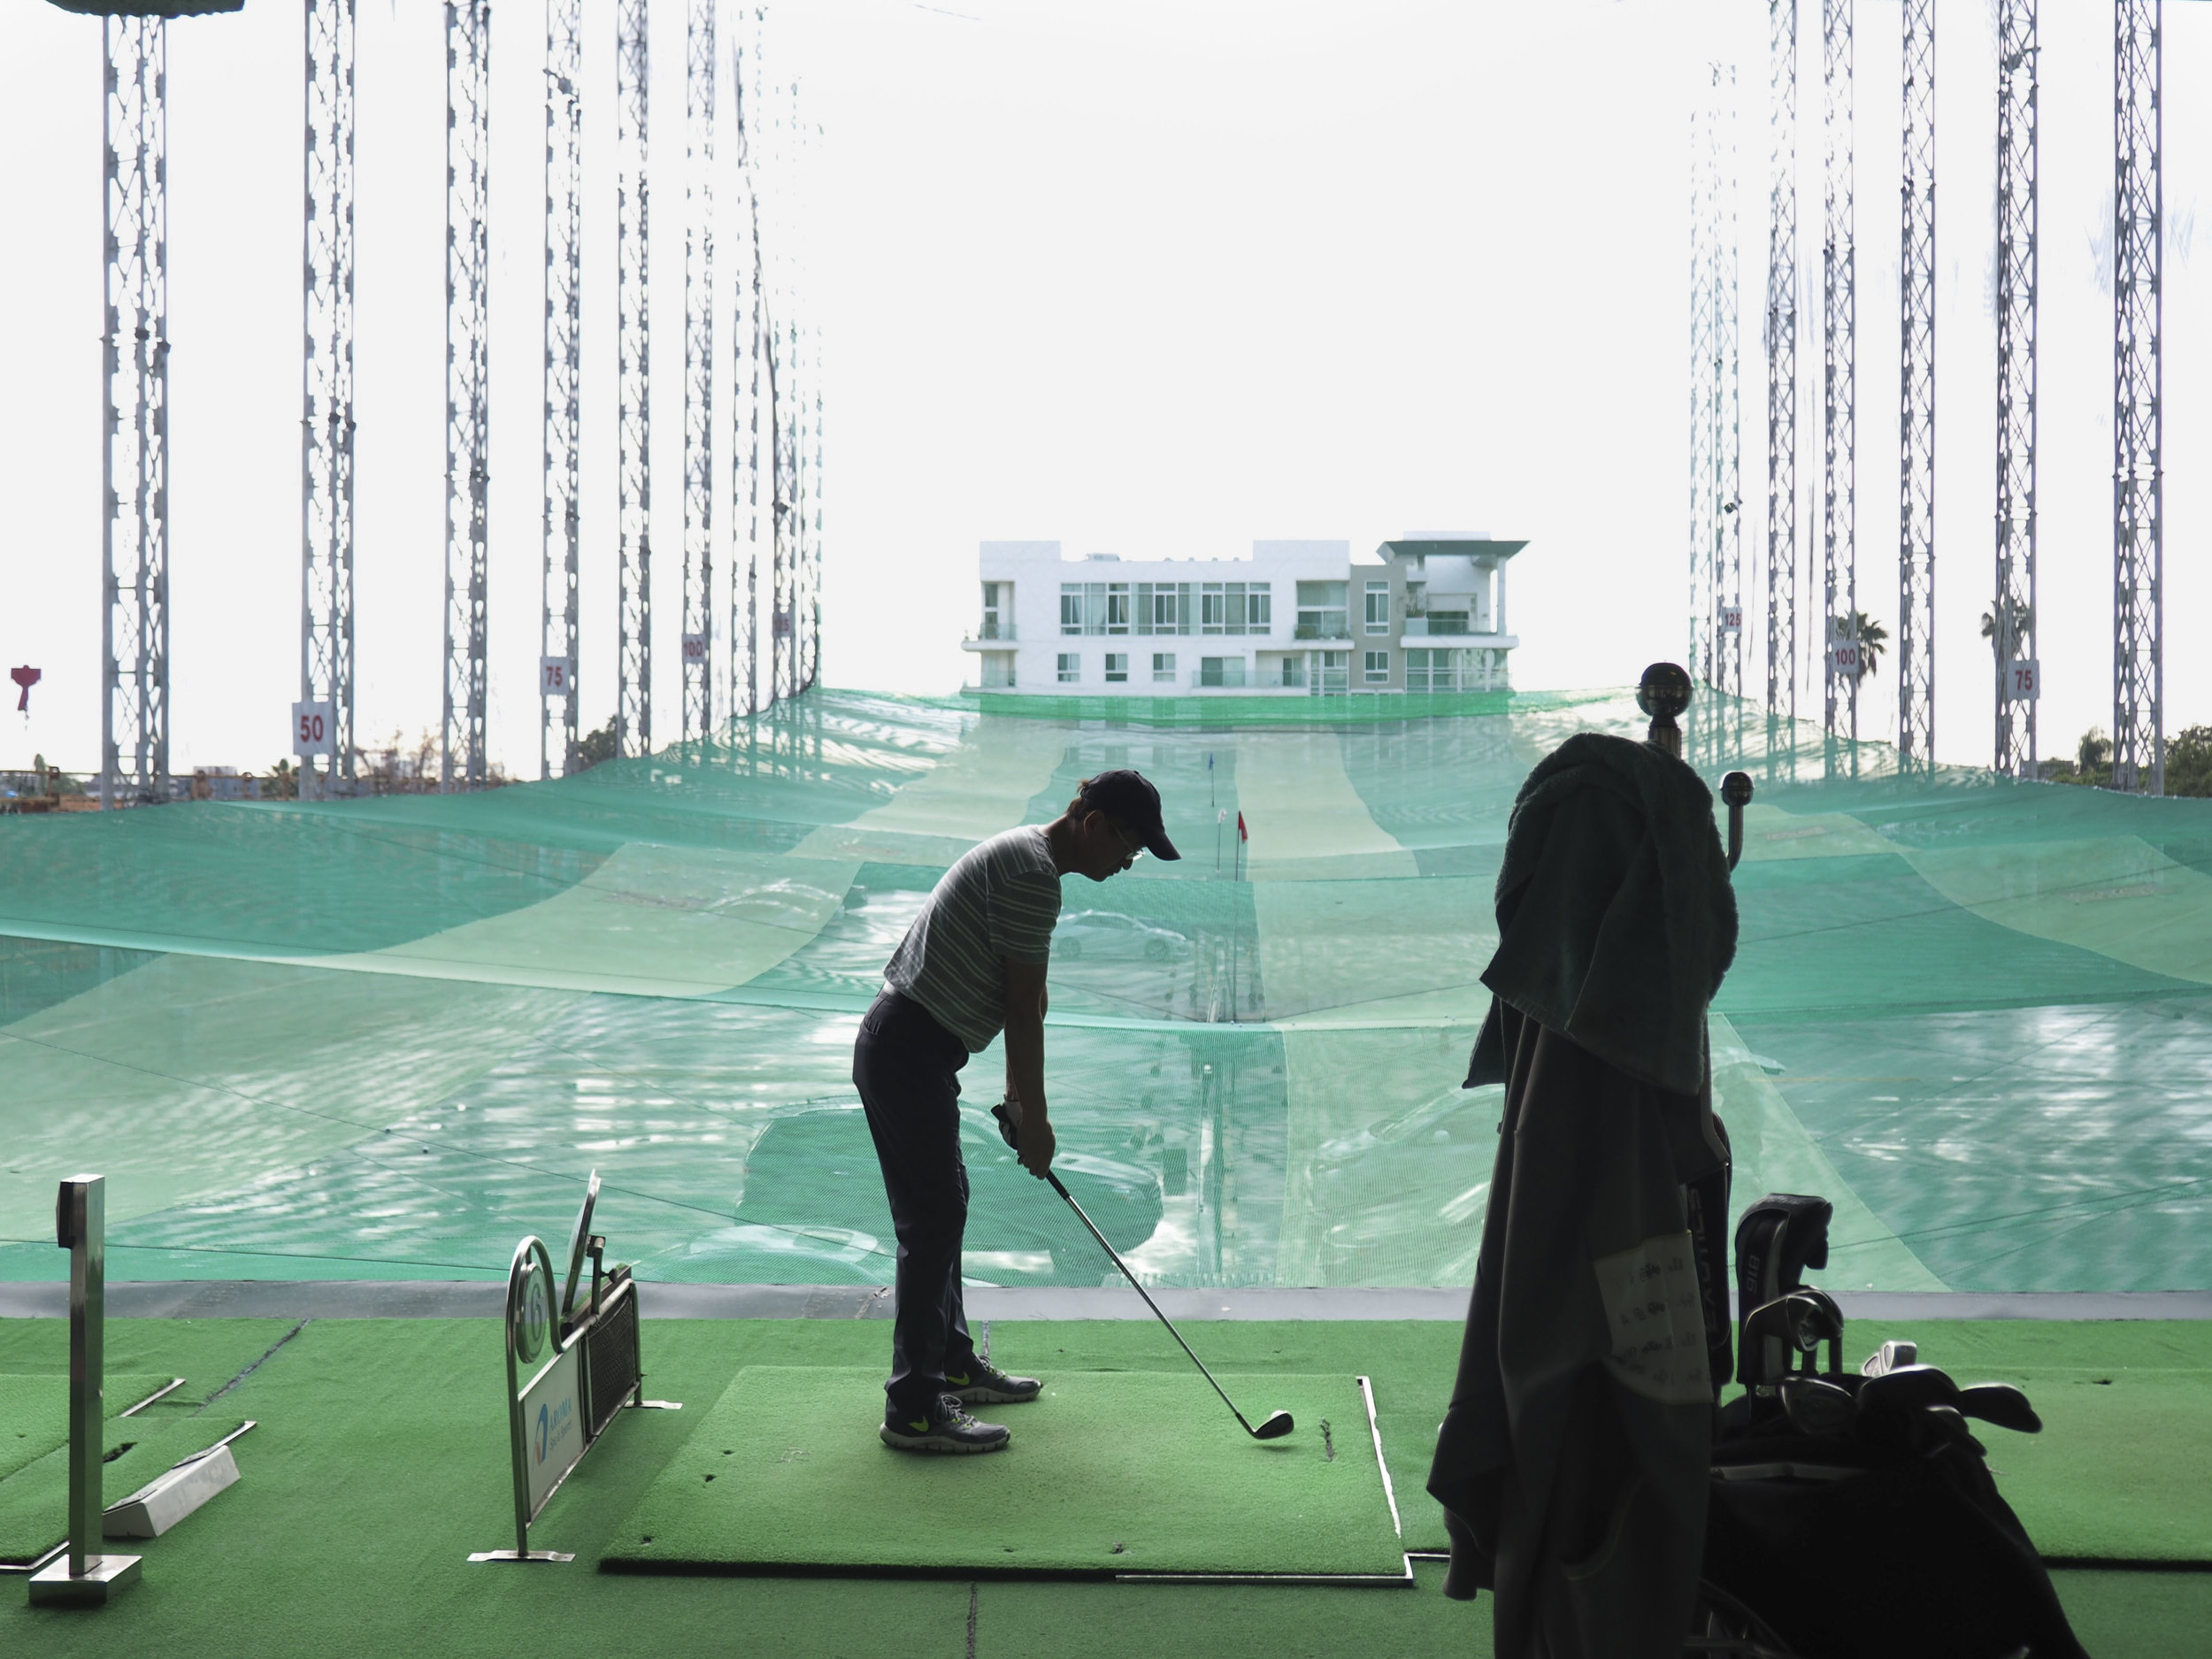 I discovered this  out of no where  golf place on the third floor of a building in Koreatown.